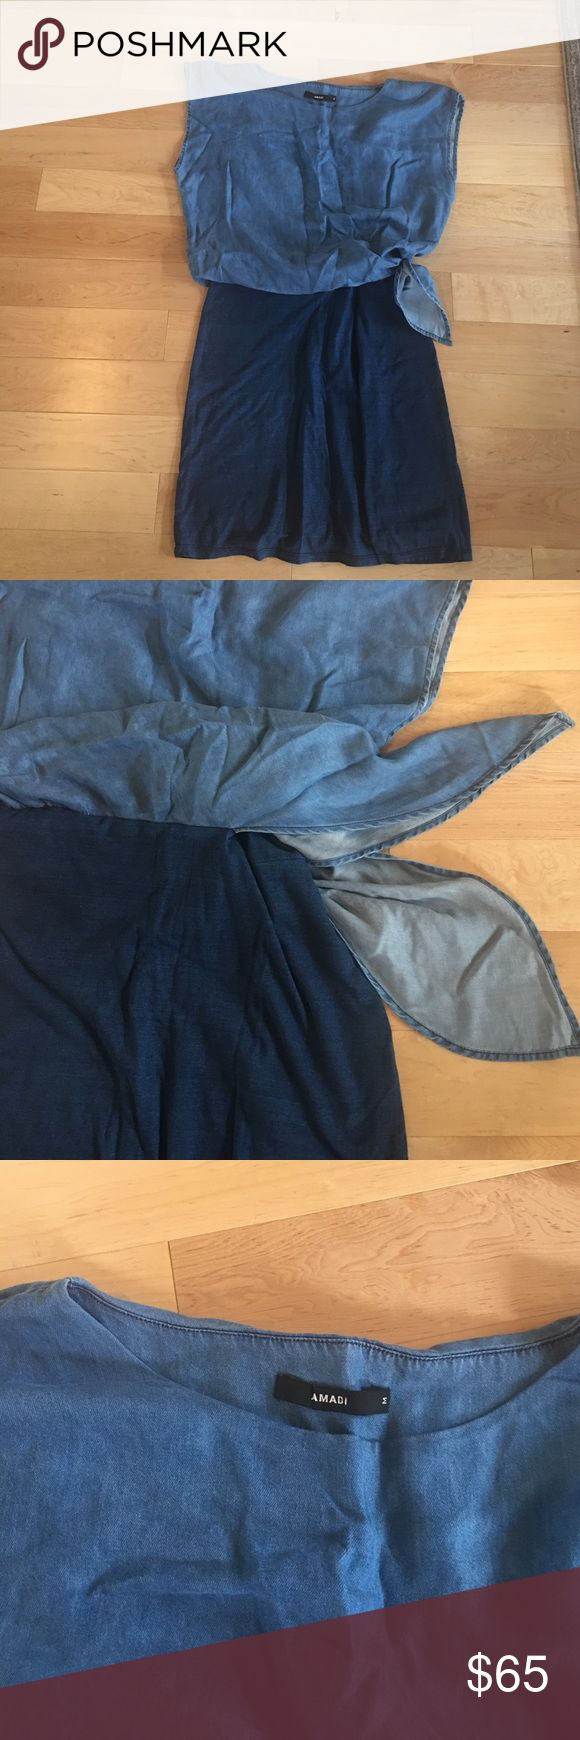 Never worn denim dress with side knot Perfect summer work dress, cap sleeves and two toned blues. Anthropologie Dresses Midi